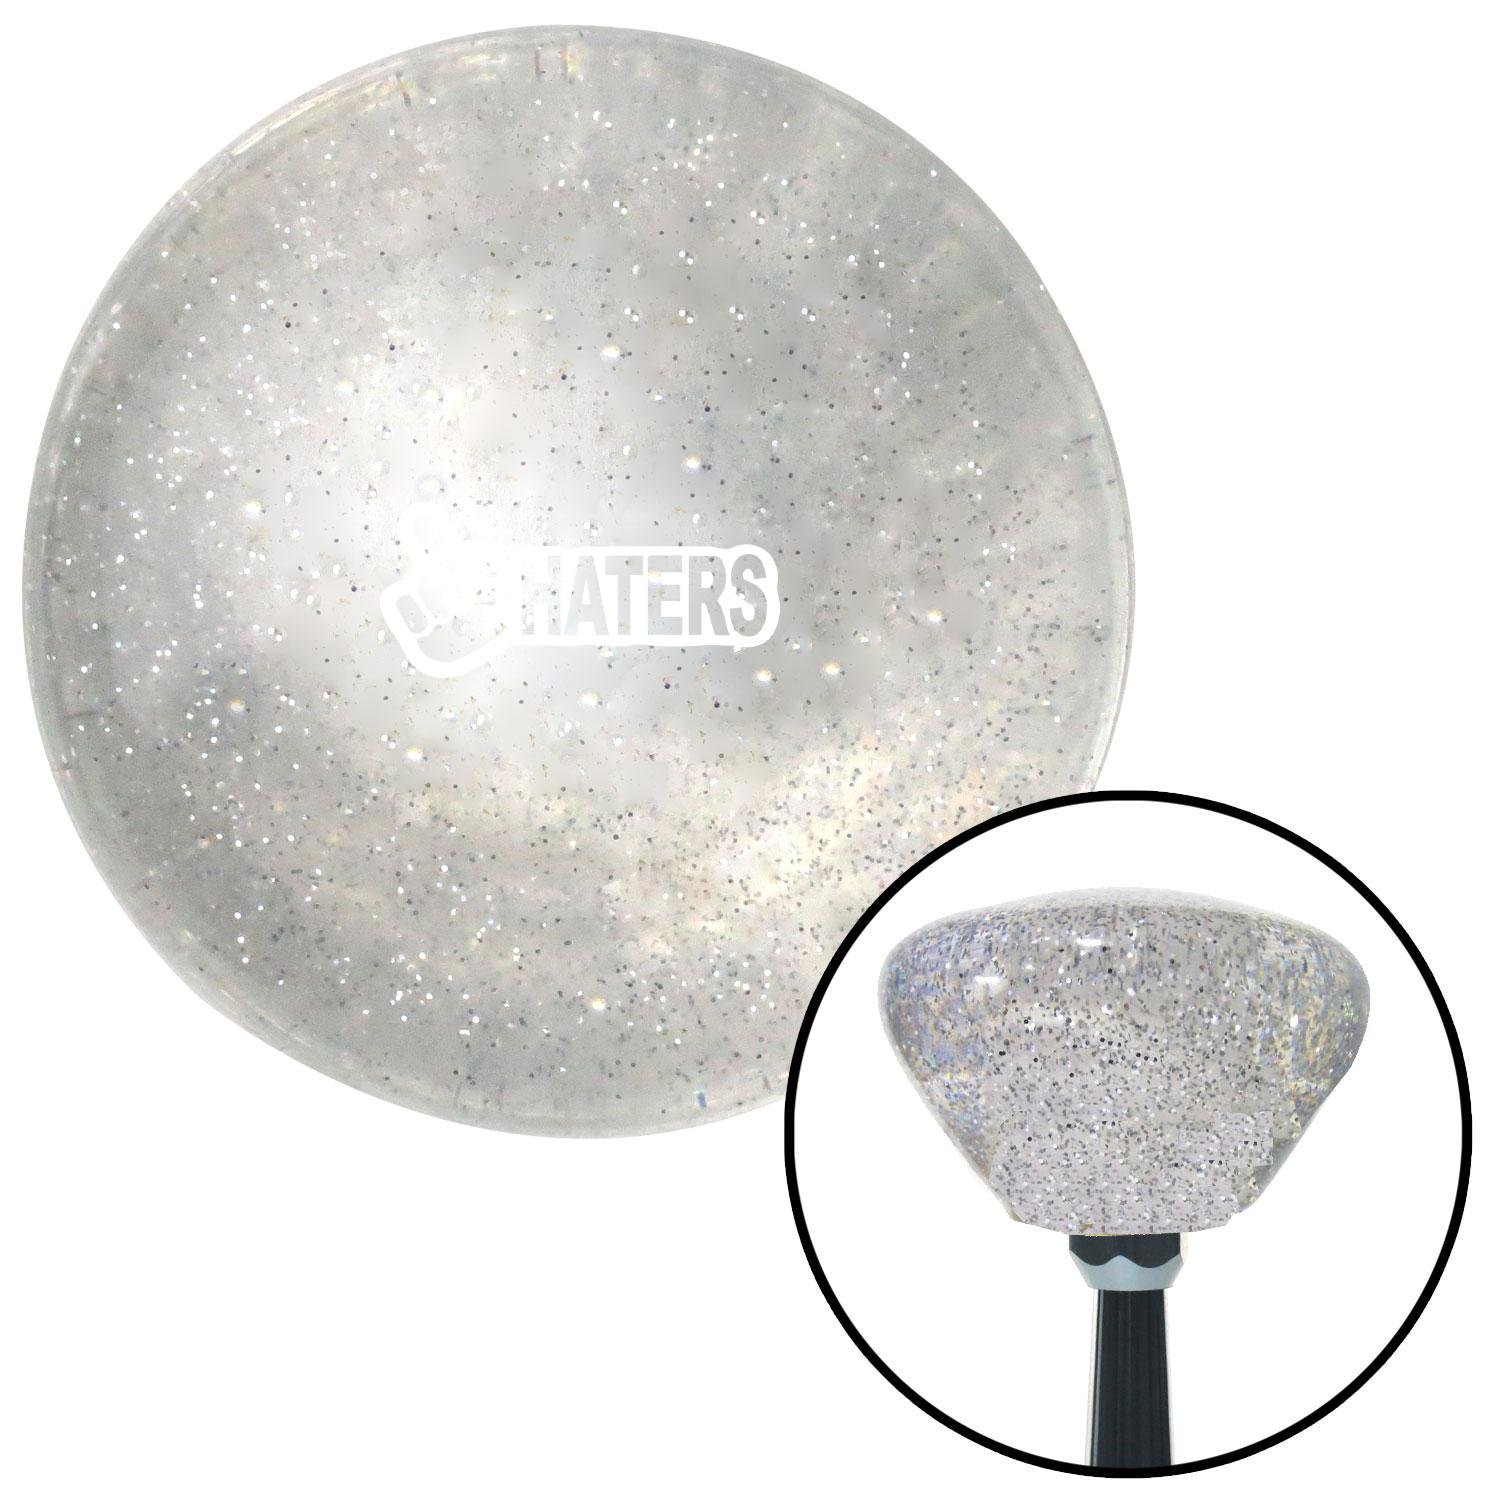 Company White Haters Clear Retro Metal Flake with M16 x 1.5 Insert American Shifter 286690 Shift Knob